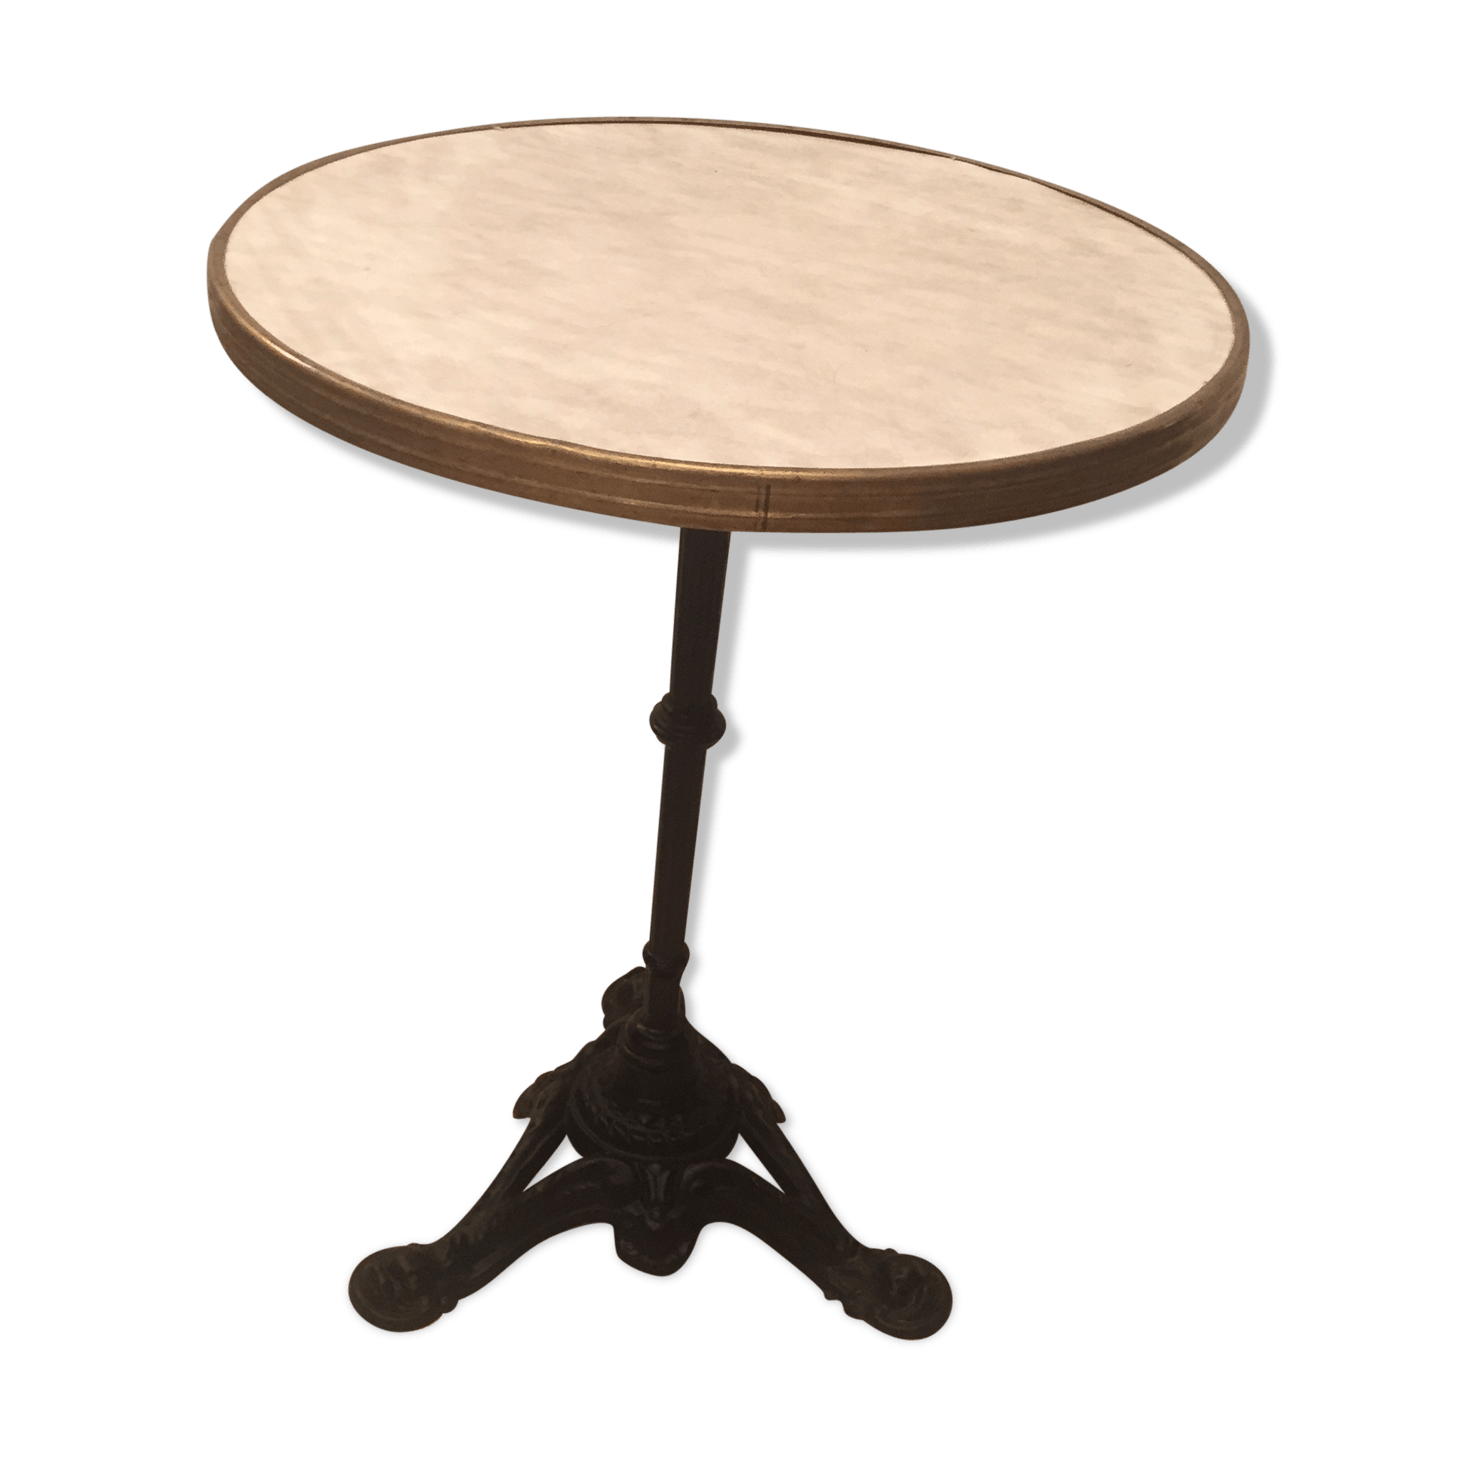 Pied Table Bistrot Pied De Table Bistrot Cool Table Bistrot D Cerclage